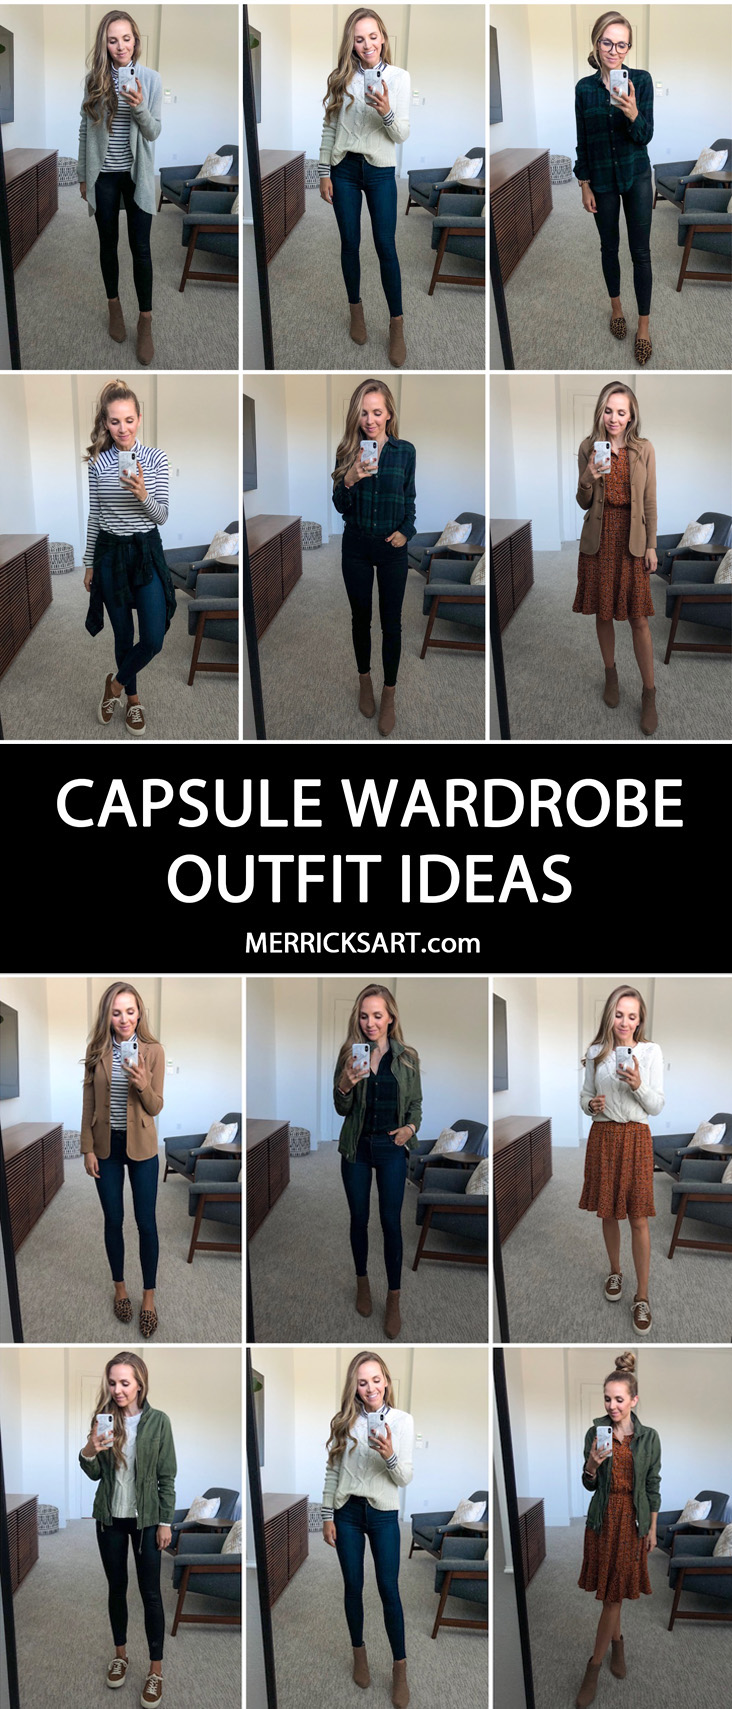 12-outfits-from-your-capsule-wardrobe